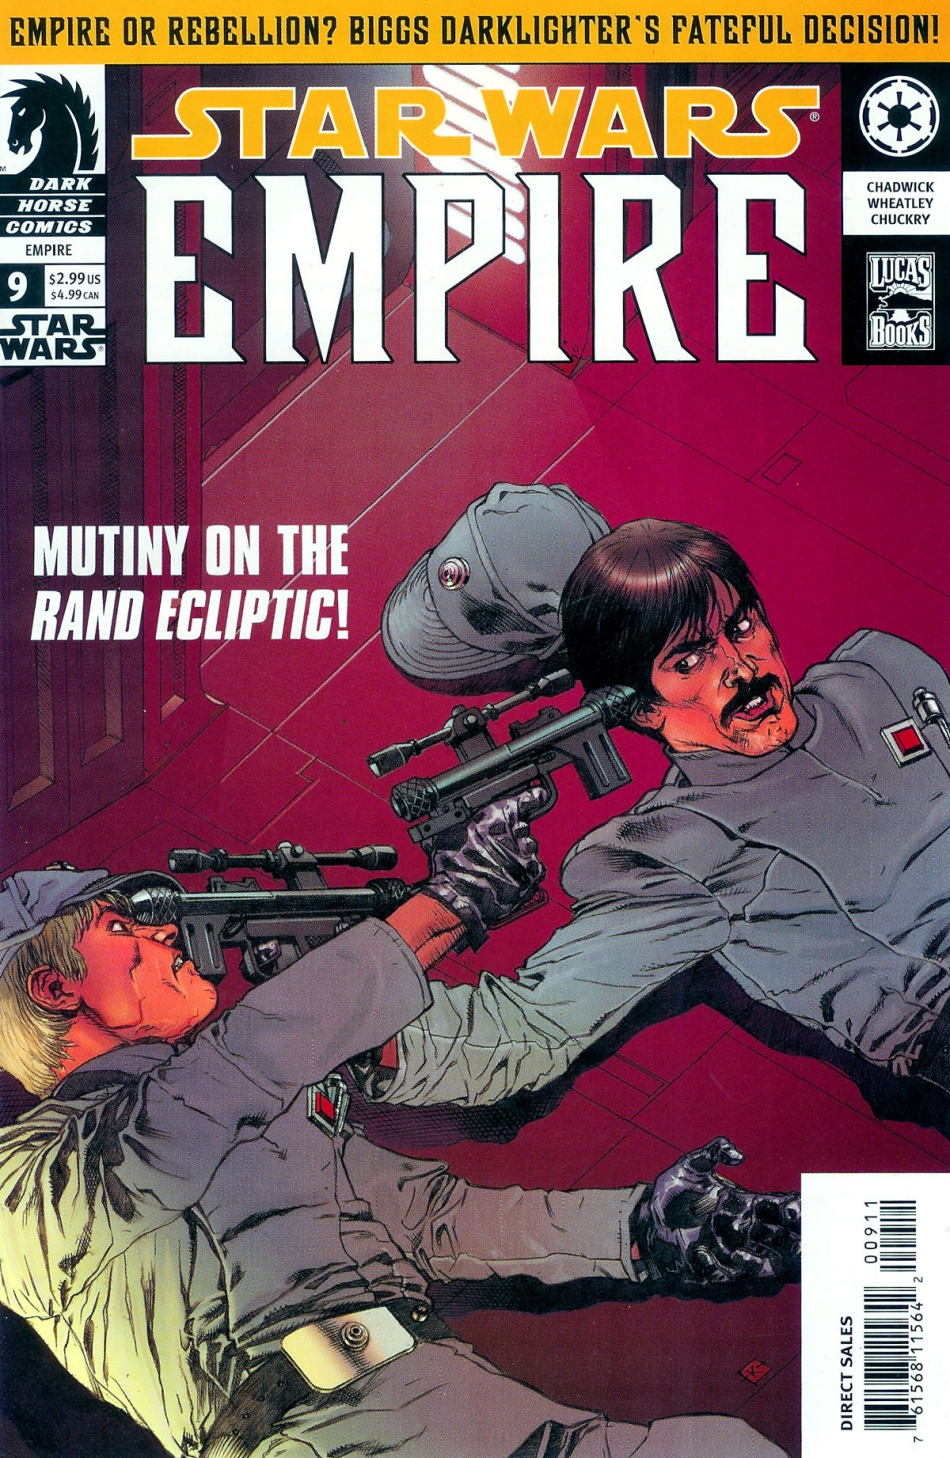 Empire #9: Darklighter, Part 2 (02.07.2003)